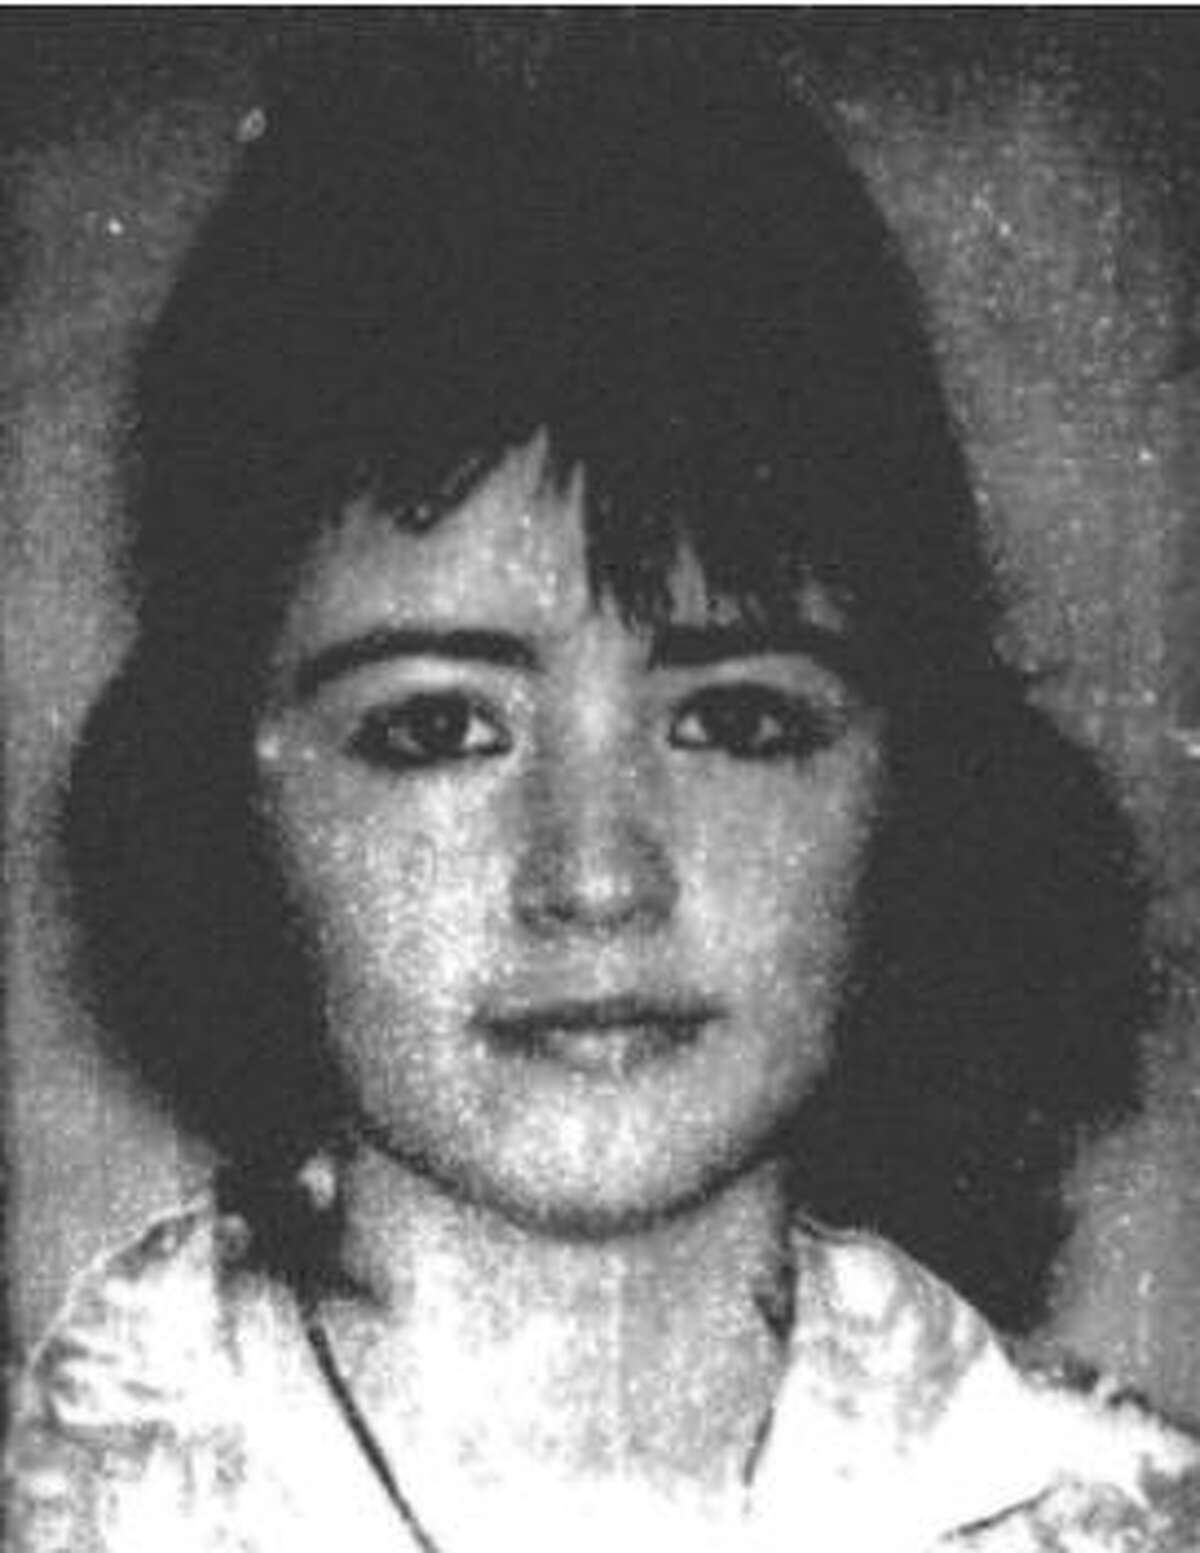 Sally McNelly (pictured) and Shane Stewart went missing on July 4, 1988, while going to a fireworks display at Lake Nasworthy. Their skeletal remains were found in November near Twin Buttes Reservoir, with their autopsies showing they both died from gunshot wounds, the San Angelo Standard-Times reported.